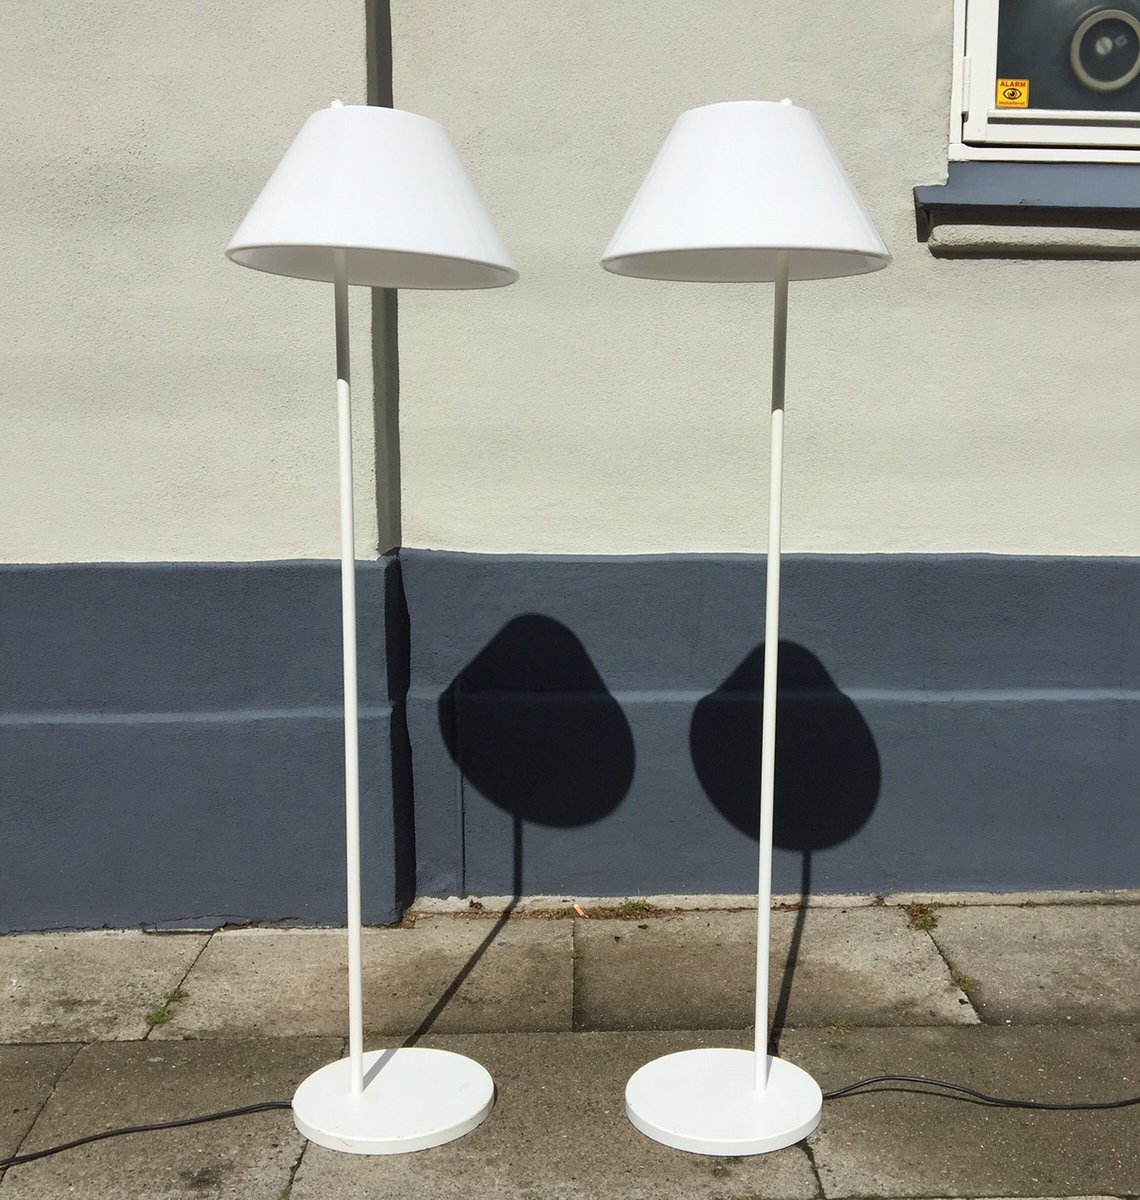 White danish minimalist combi floor lamps by per iversen for louis white danish minimalist combi floor lamps by per iversen for louis poulsen 1980s set of 2 geotapseo Images